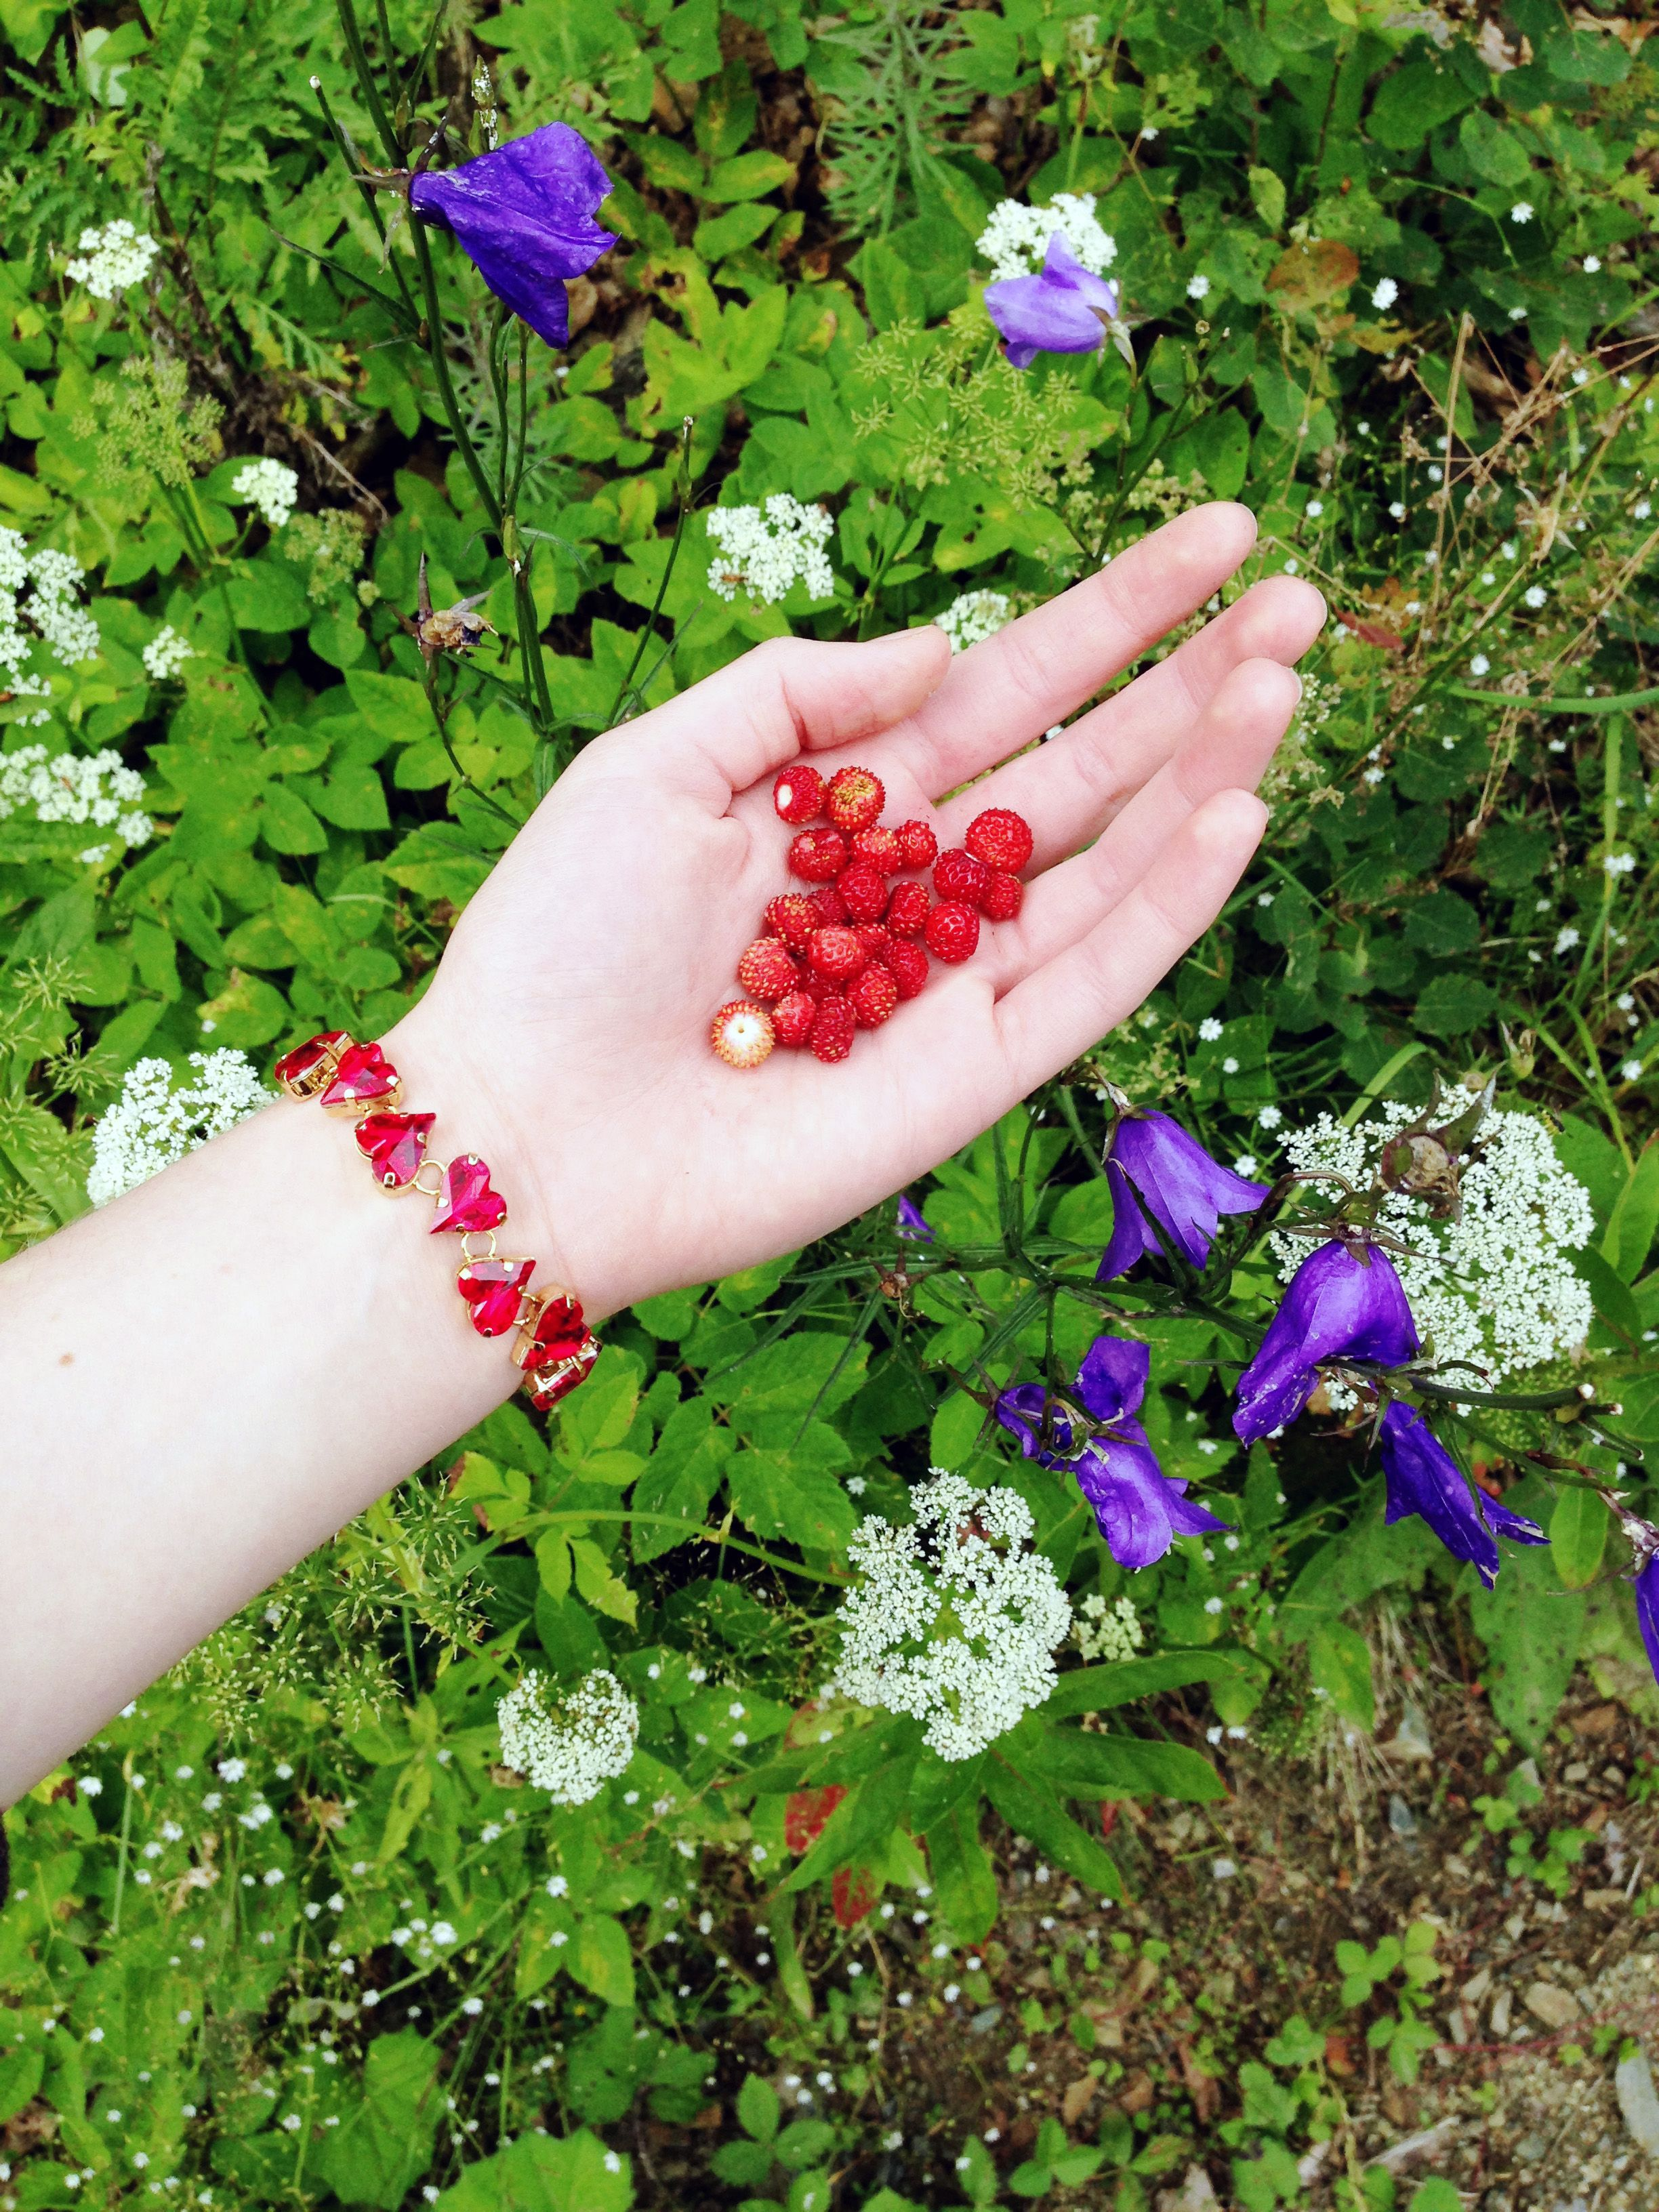 Finally it's summer! Strawberry season is at its high point & you can find them everywhere… In the Austrian forests, where the summer heat won't kill you, you'll find #wildstrawberries. A delicious snack after a long hike through the nature. But of course no one can leave home without a piece of jewelry. This bracelet is made of Swarovski 4810 #SweetHeart Fancy Stones in Light Siam. Read more → http://bit.ly/1GtHRwj